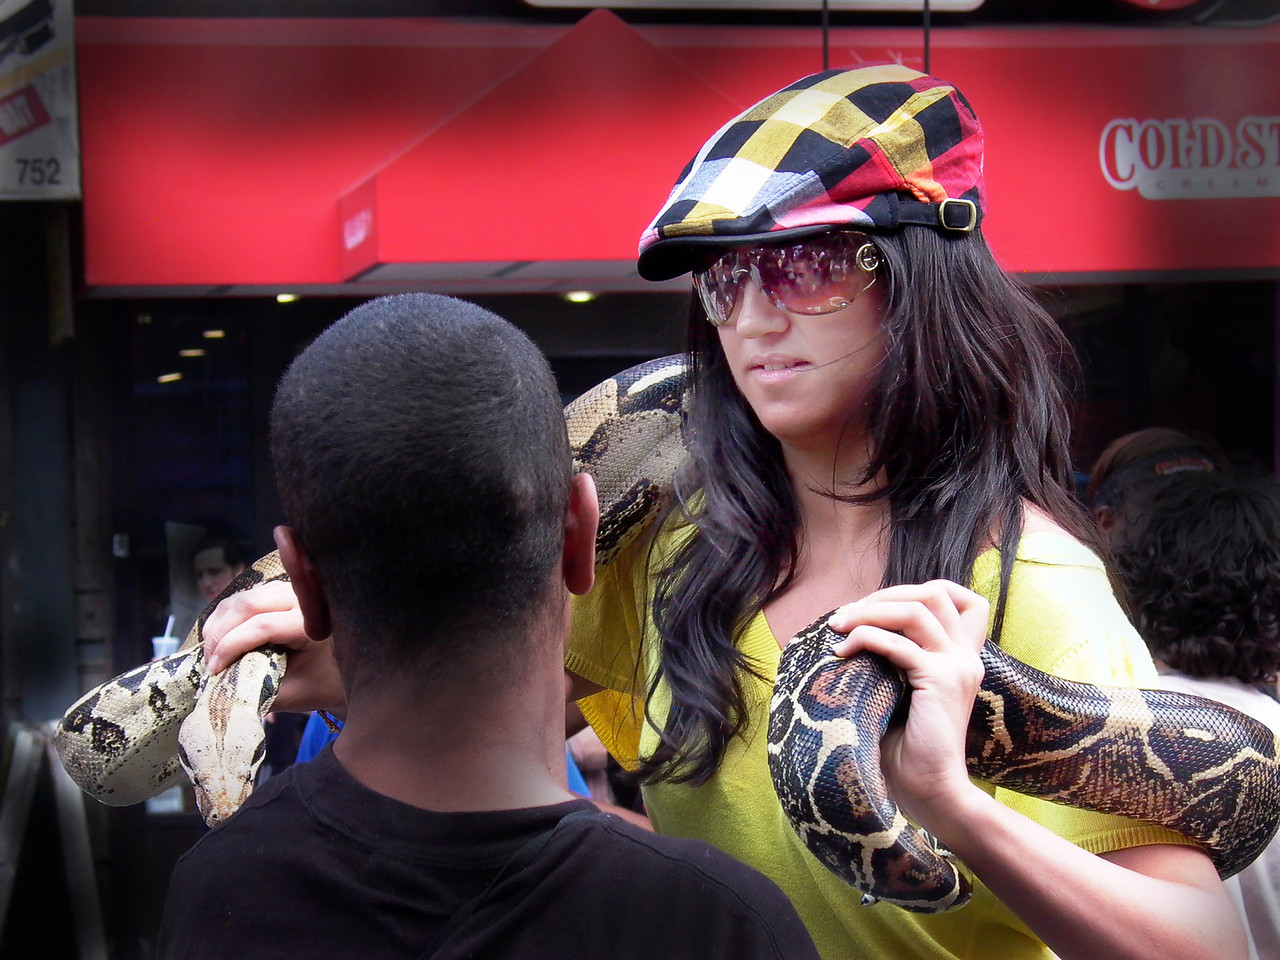 Girl with snake- trying to entice the young man? Ninth Avenue Street Fair, New York City- Leica Digilux 1